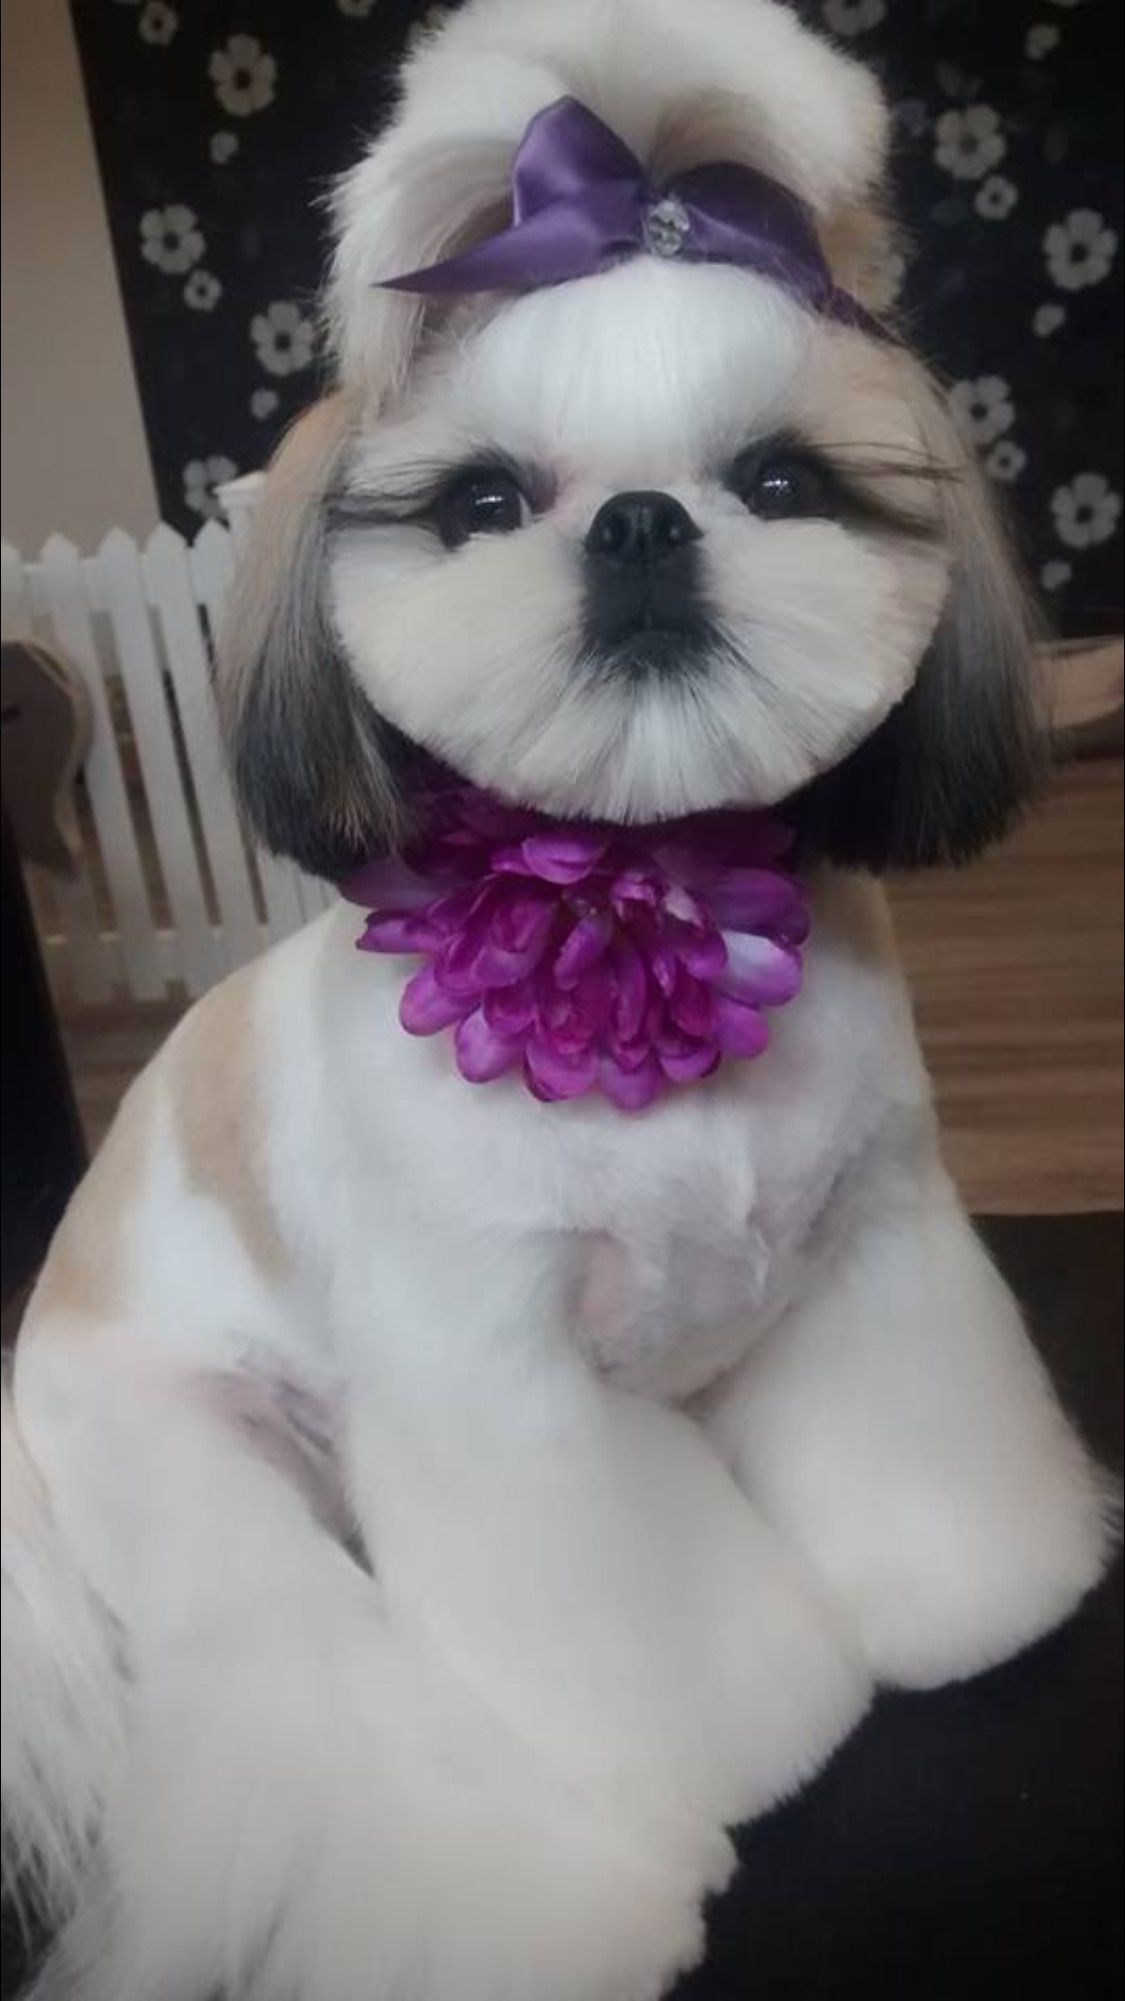 Shih tzu haircut styles pin by kathyvantassell on animals  pinterest  dog grooming dogs